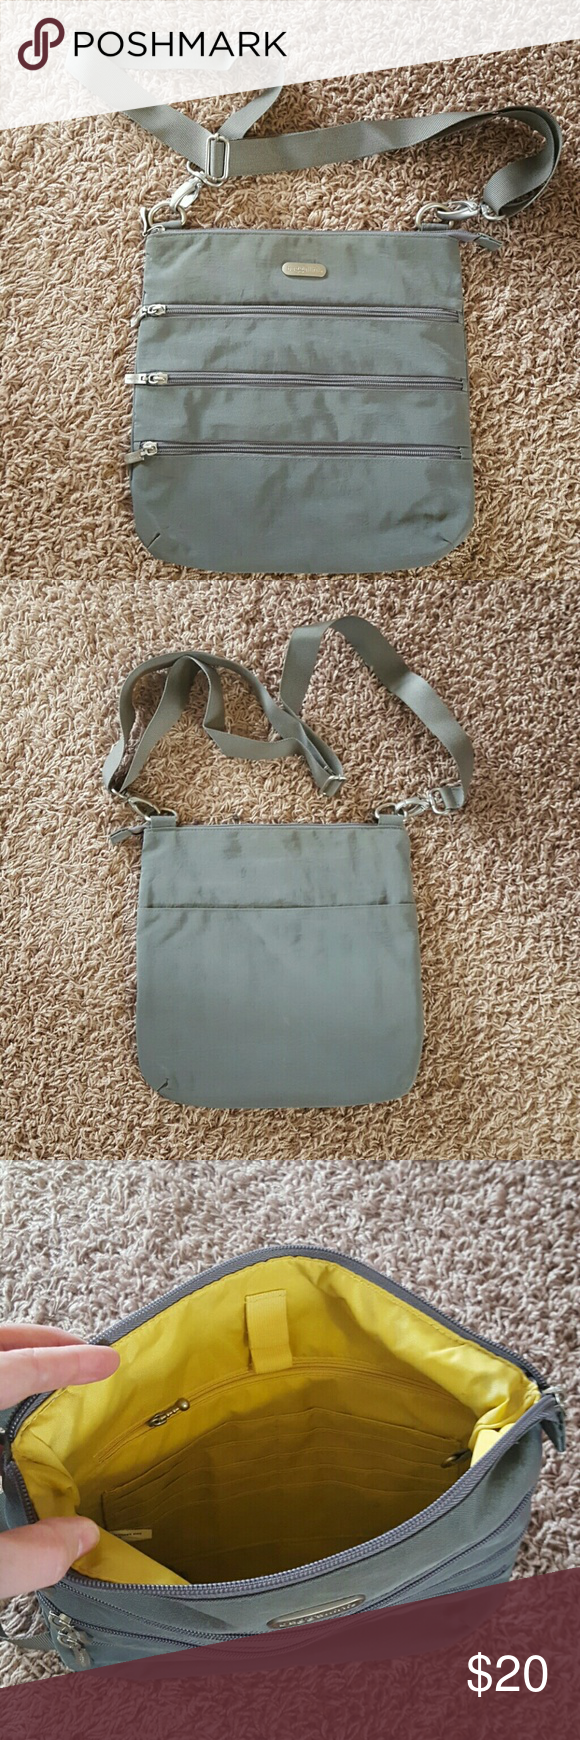 "Baggallini Crossbody Zipper Bag Small bag with adjustable strap. Tons of zipper pockets for separate storage. Measures about 11""w x 11""h. Excellent condition! Baggallini Bags Crossbody Bags"